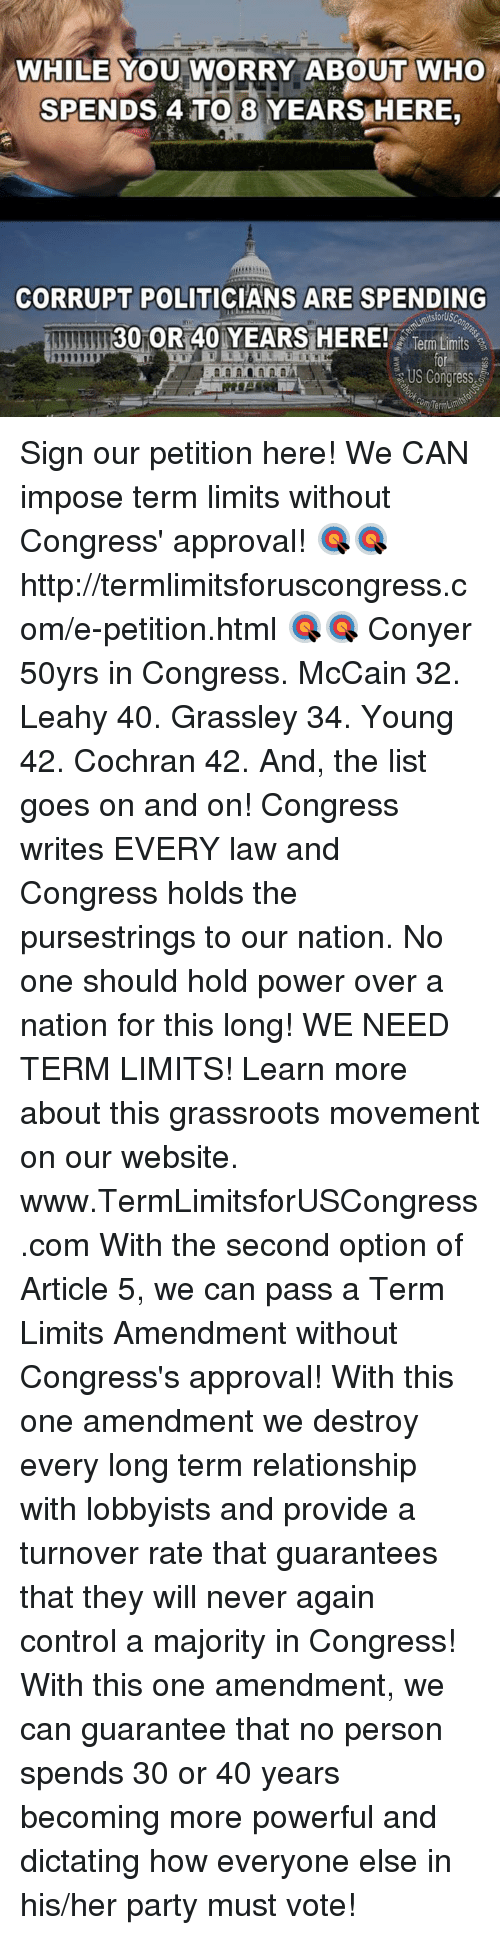 Memes, Control, and Http: WHILE YOU WORRY ABOUT WHO  SPENDS ATTO 8 YEARS HERE  CORRUPT POLITICIANS ARE SPENDING  30 OR40 YEARS HERE!  ilsforUSC  Term Limits  US Congress,  Term Limits Sign our petition here! We CAN impose term limits without Congress' approval! 🎯🎯http://termlimitsforuscongress.com/e-petition.html 🎯🎯  Conyer 50yrs in Congress.  McCain 32. Leahy 40.  Grassley 34.  Young 42.  Cochran 42.  And, the list goes on and on!  Congress writes EVERY law and Congress holds the pursestrings to our nation.  No one should hold power over a nation for this long!  WE NEED TERM LIMITS! Learn more about this grassroots movement on our website. www.TermLimitsforUSCongress.com  With the second option of Article 5, we can pass a Term Limits Amendment without Congress's approval! With this one amendment we destroy every long term relationship with lobbyists and provide a turnover rate that guarantees that they will never again control a majority in Congress! With this one amendment, we can guarantee that no person spends 30 or 40 years becoming more powerful and dictating how everyone else in his/her party must vote!